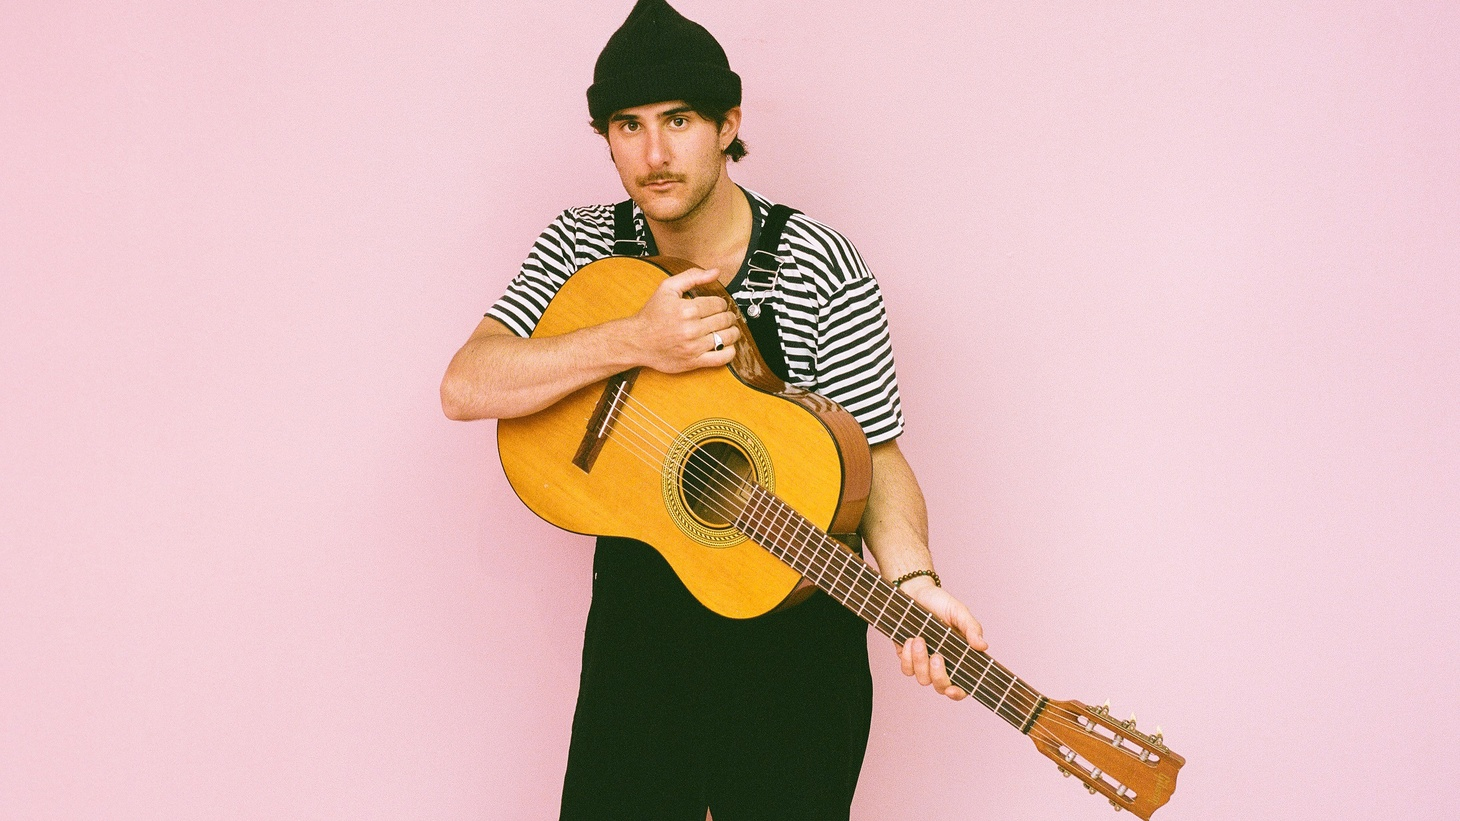 Spearheaded by multi-instrumentalist Zac Farro, HALFNOISE is a way for his friends to get involved with the project and encourage each other to step out of their comfort zones and have some fun.